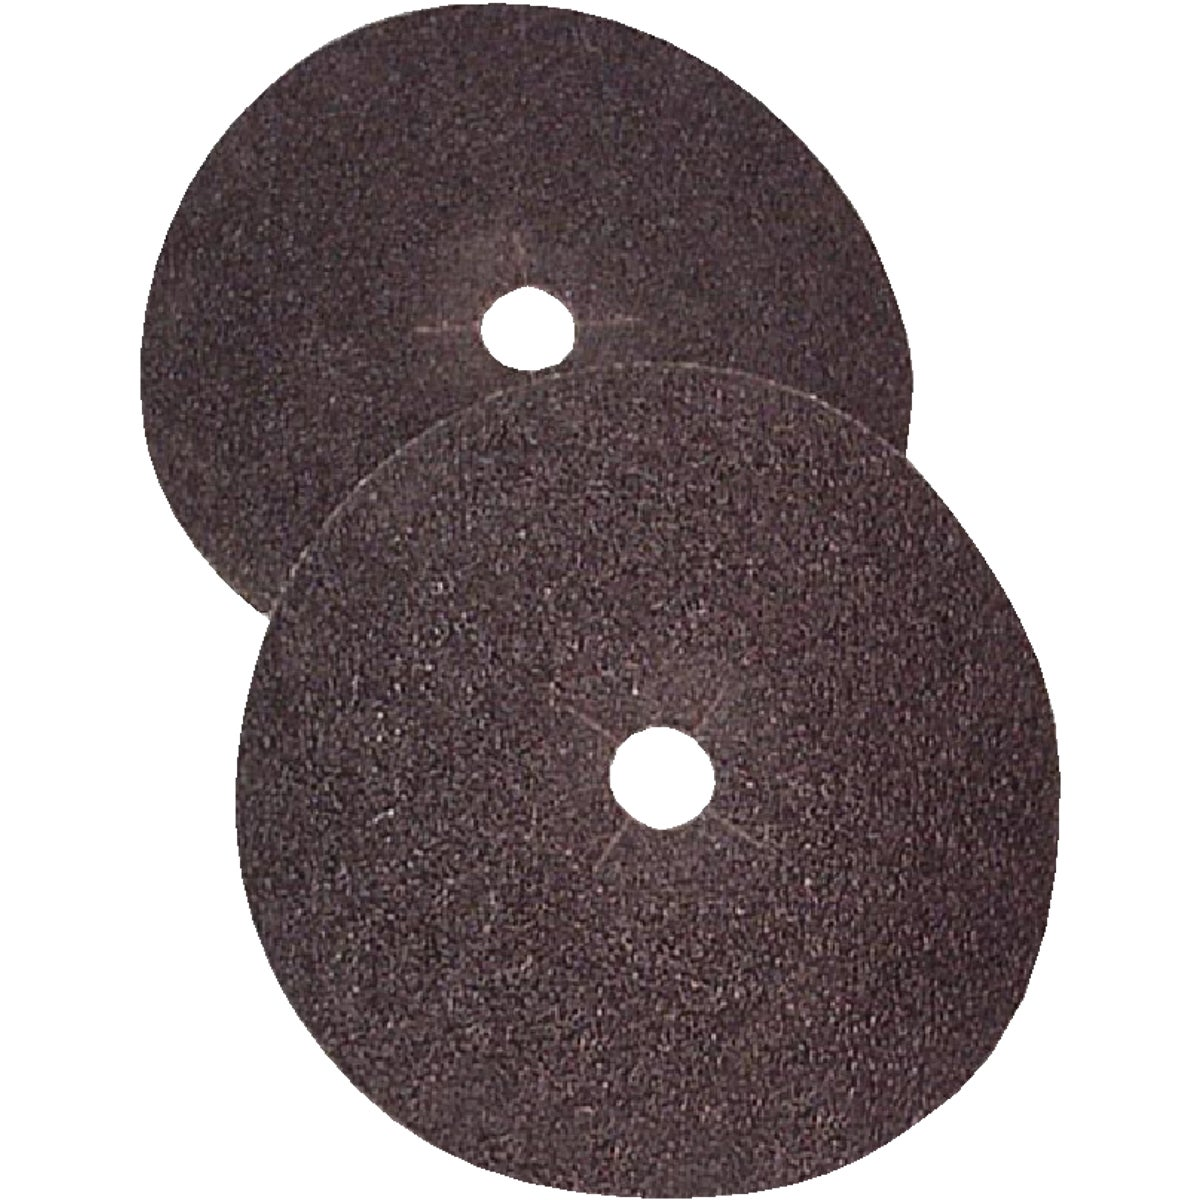 "7"" 80G FLR SANDING DISC - 006-870880 by Virginia Abrasives"